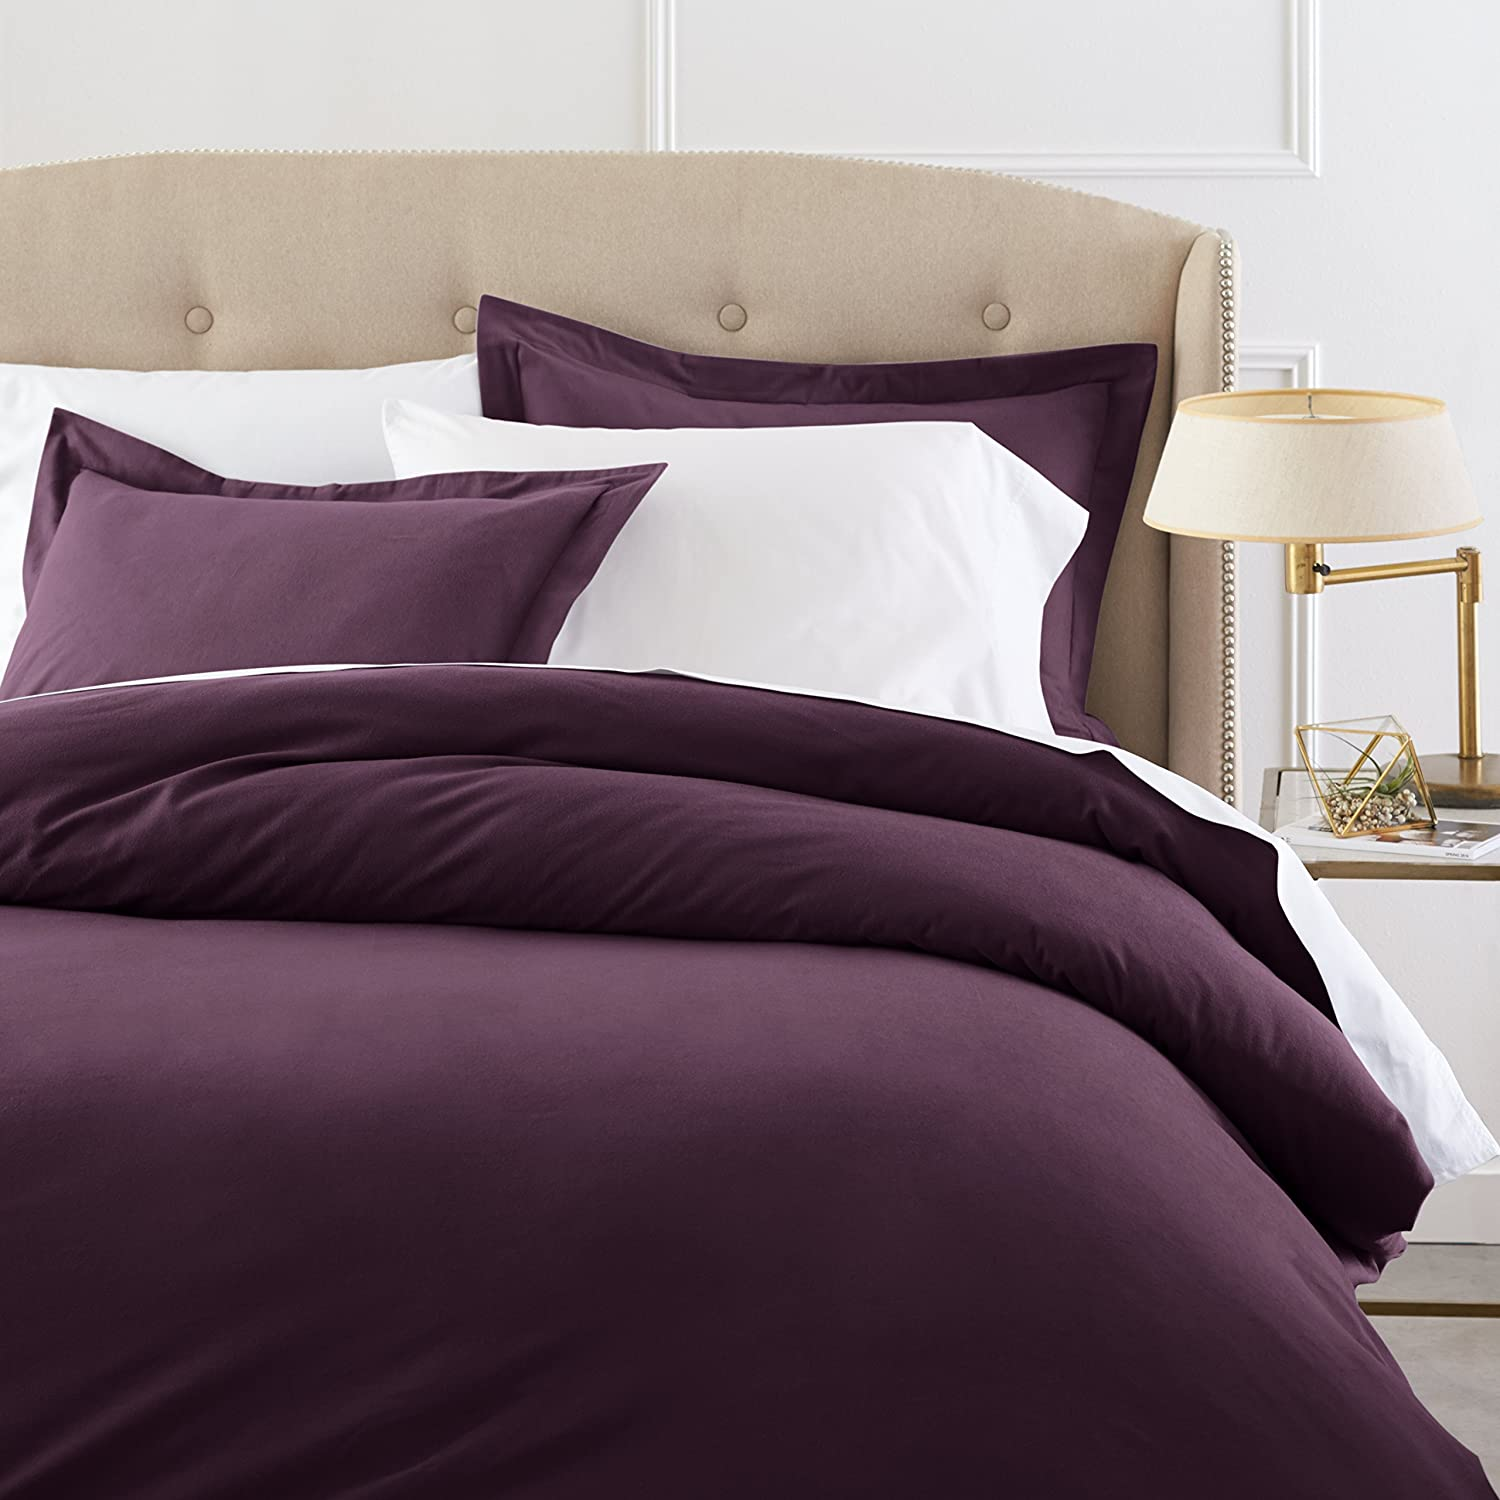 Pinzon Heavyweight Cotton Flannel Duvet Set - Full/Queen, Aubergine